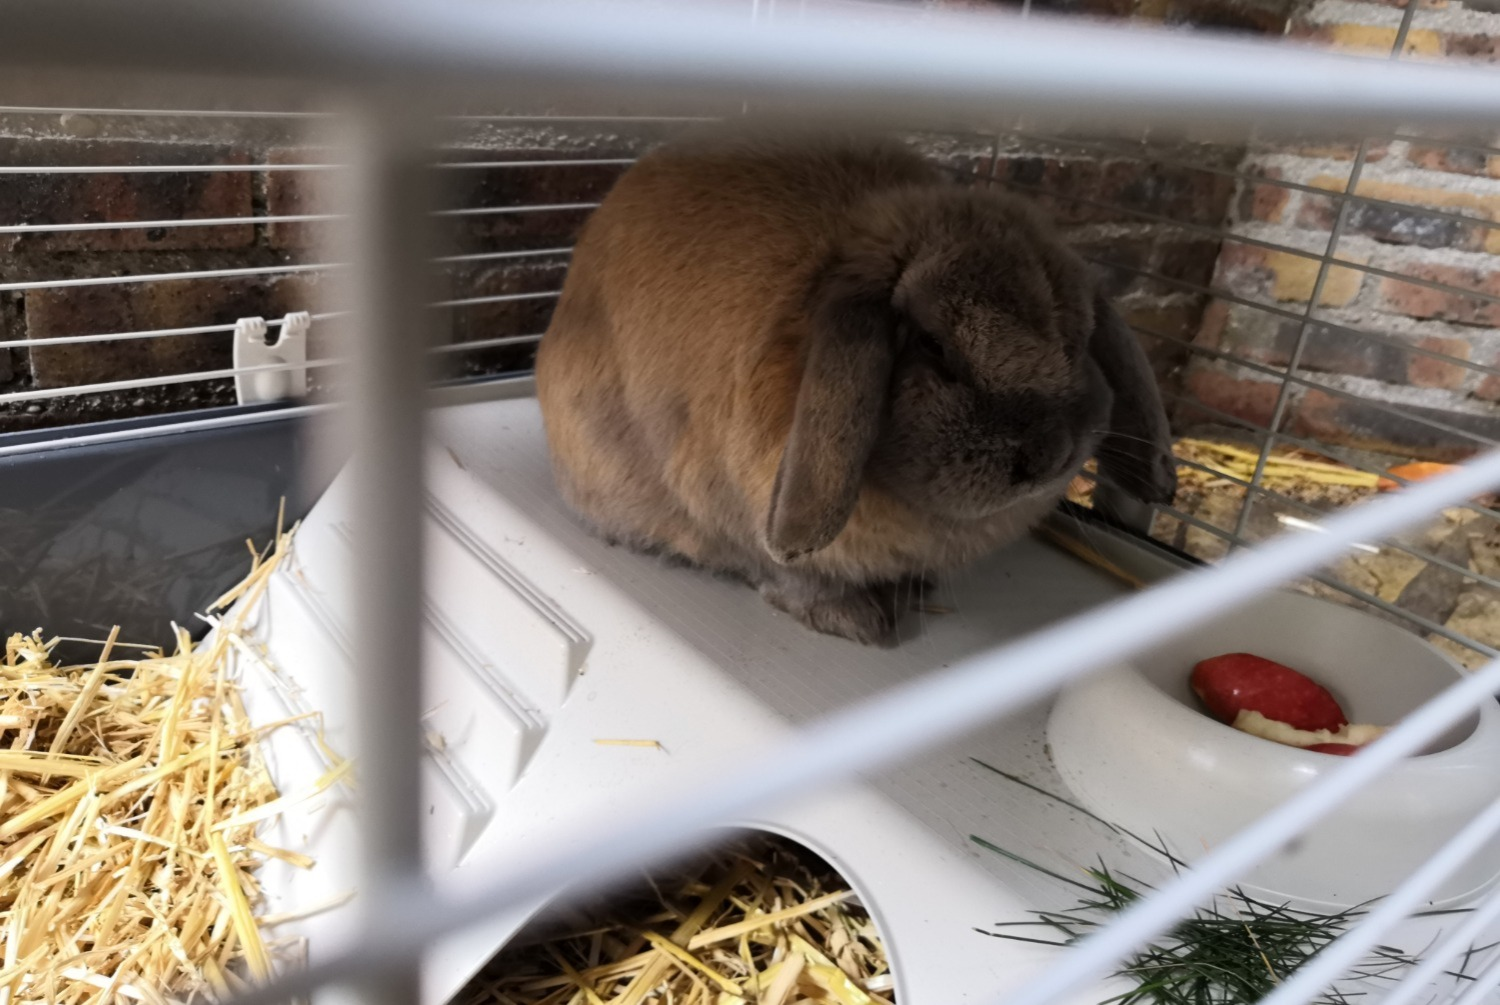 Discovery alert Rabbit Unknown Champigny-sur-Marne France